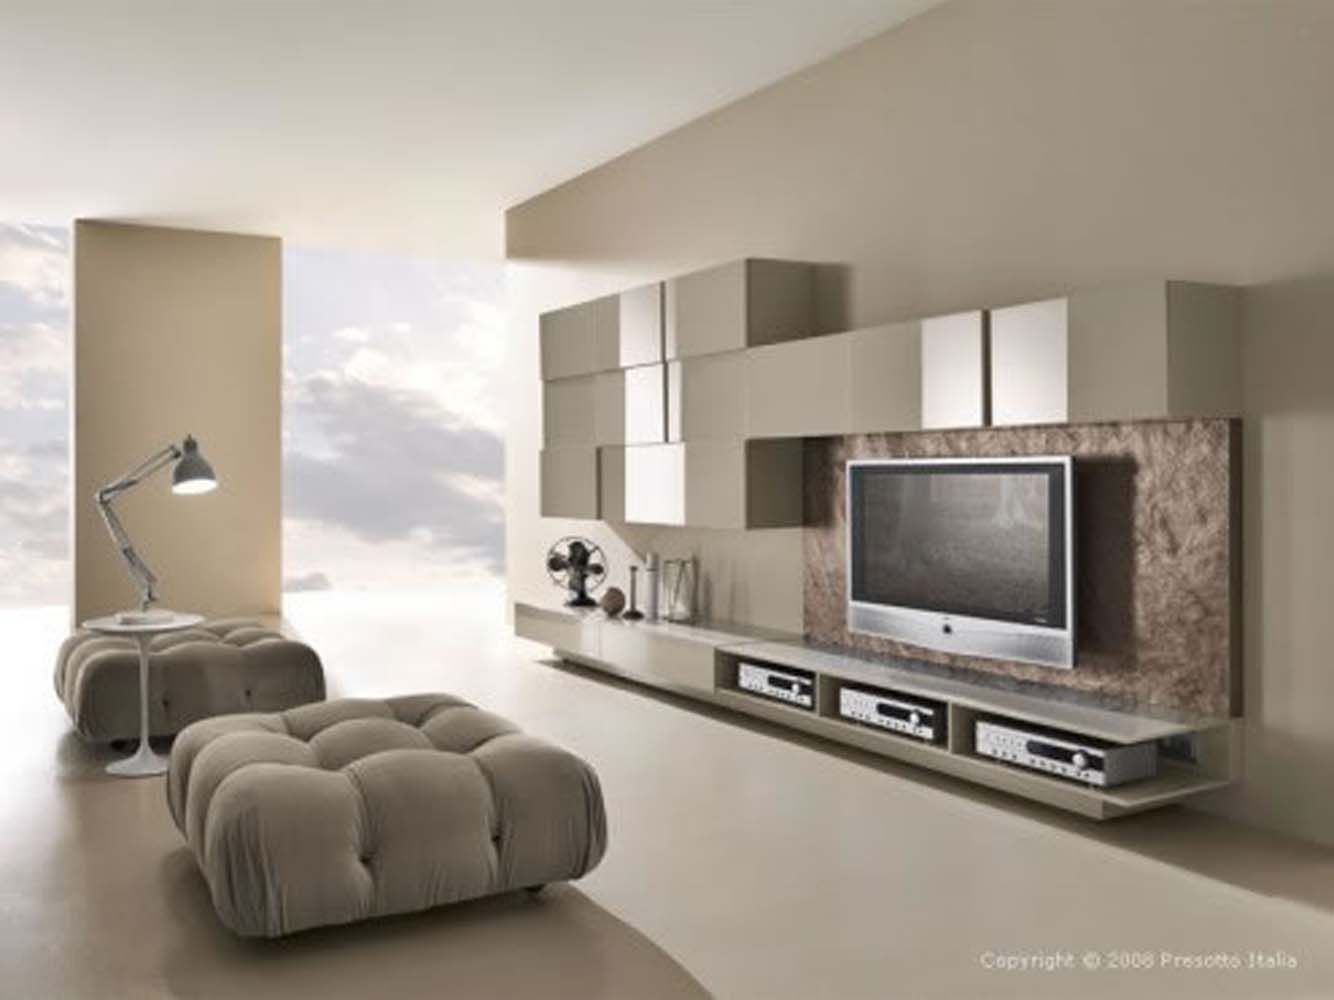 Home Living Room Interior Design Ideas Visit Http Www. Contemporary Living Room Furniture Ideas. Contemporary Living Room Design Wh Furnure Living Room. Endearing Modern Living Room Pictures with Endearing Glass